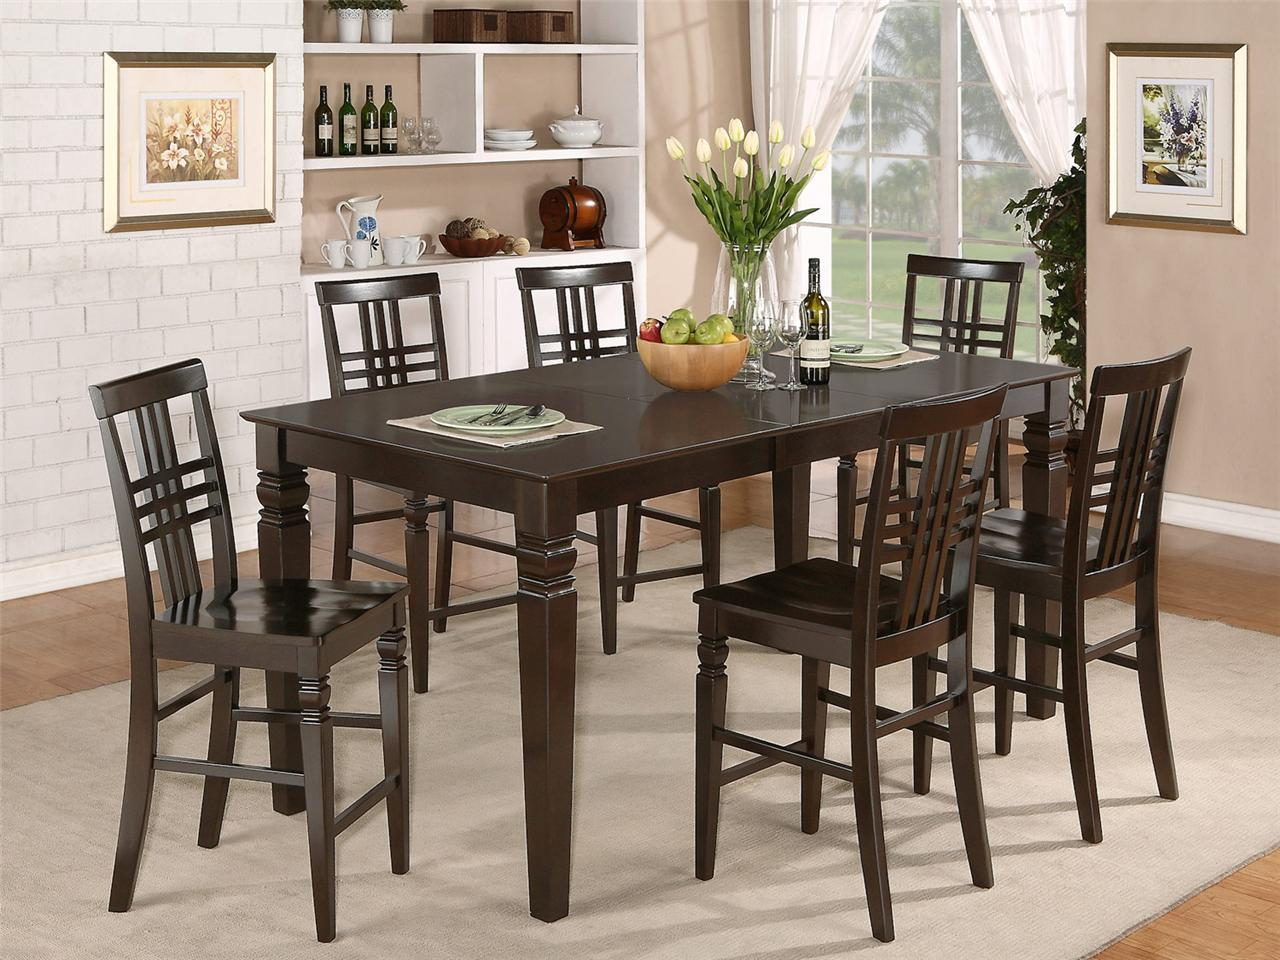 7pc rectangular counter height dining room table set 6 for Dining room table height